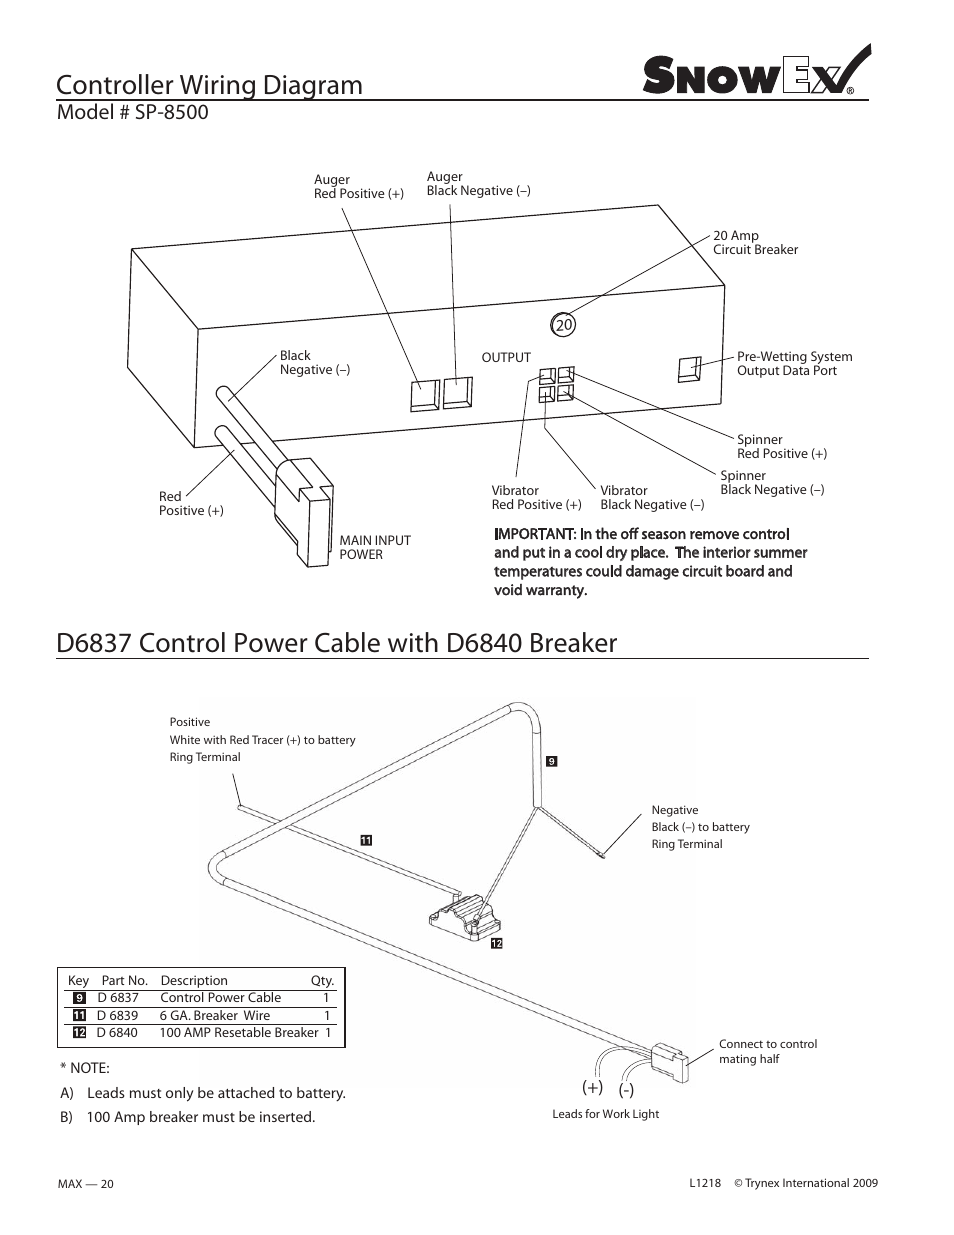 Salt Dogg Spreader Wiring Diagram from lh3.googleusercontent.com